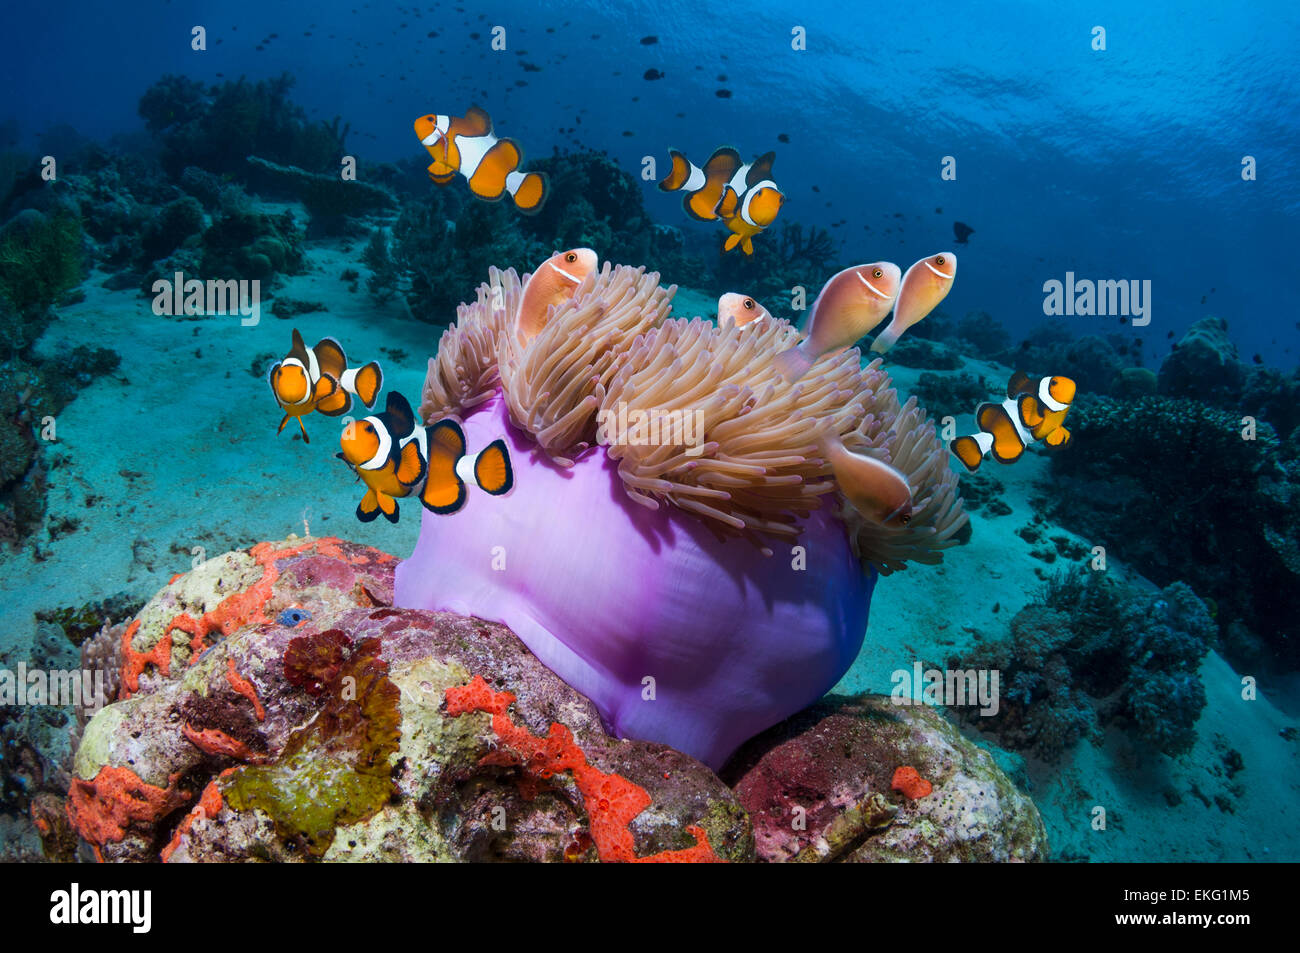 Clown anemonefish (Amphiprion percula) and Pink anemonefish (A perideraion) with magnificent anemone on coral reef. - Stock Image